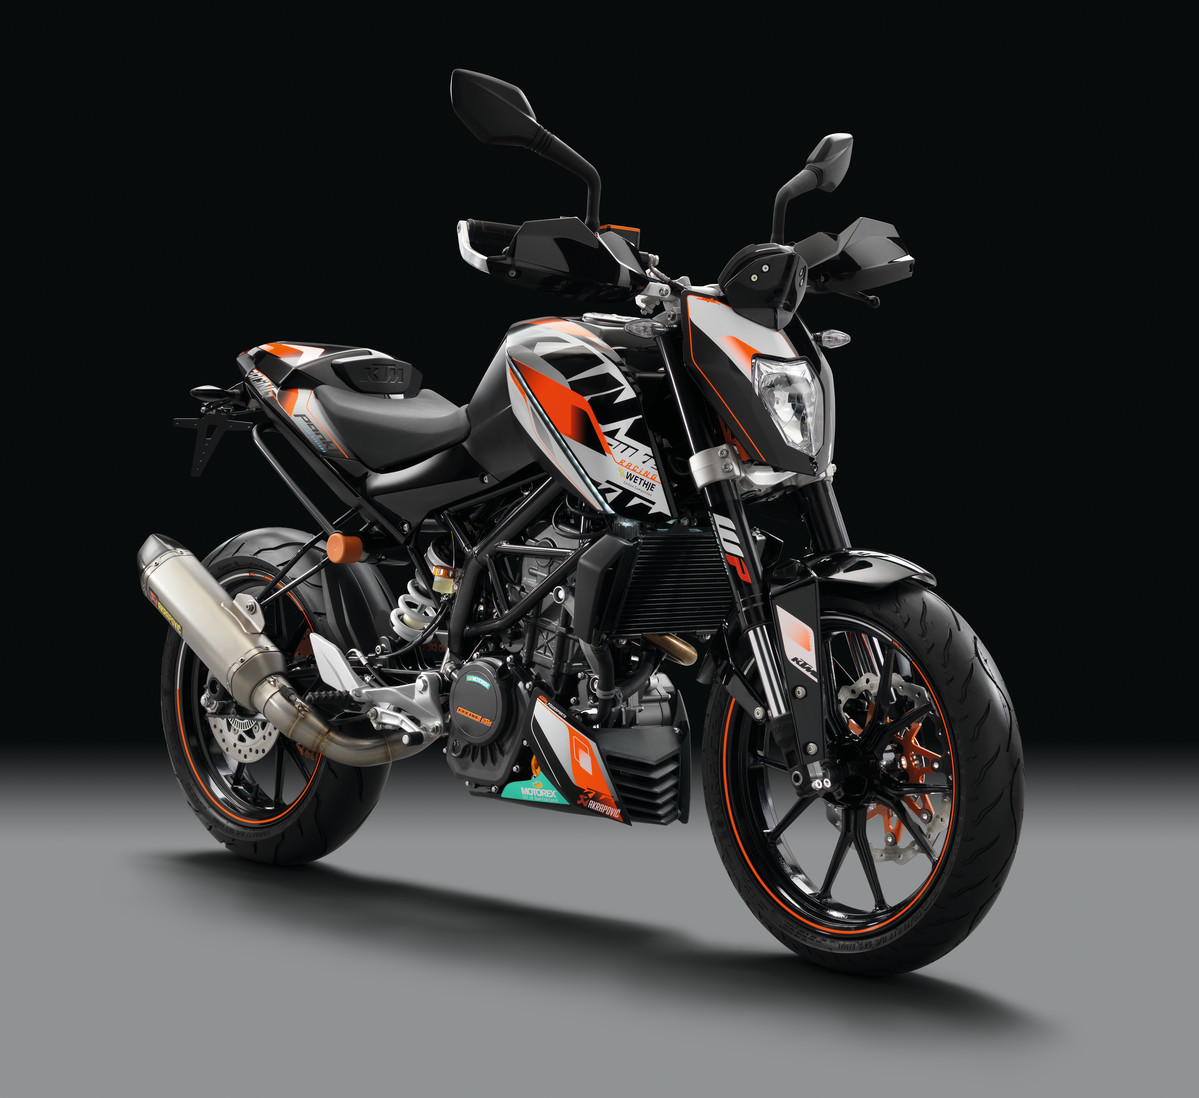 2018 ktm 200 duke ditches underbelly exhaust revealed at. Black Bedroom Furniture Sets. Home Design Ideas